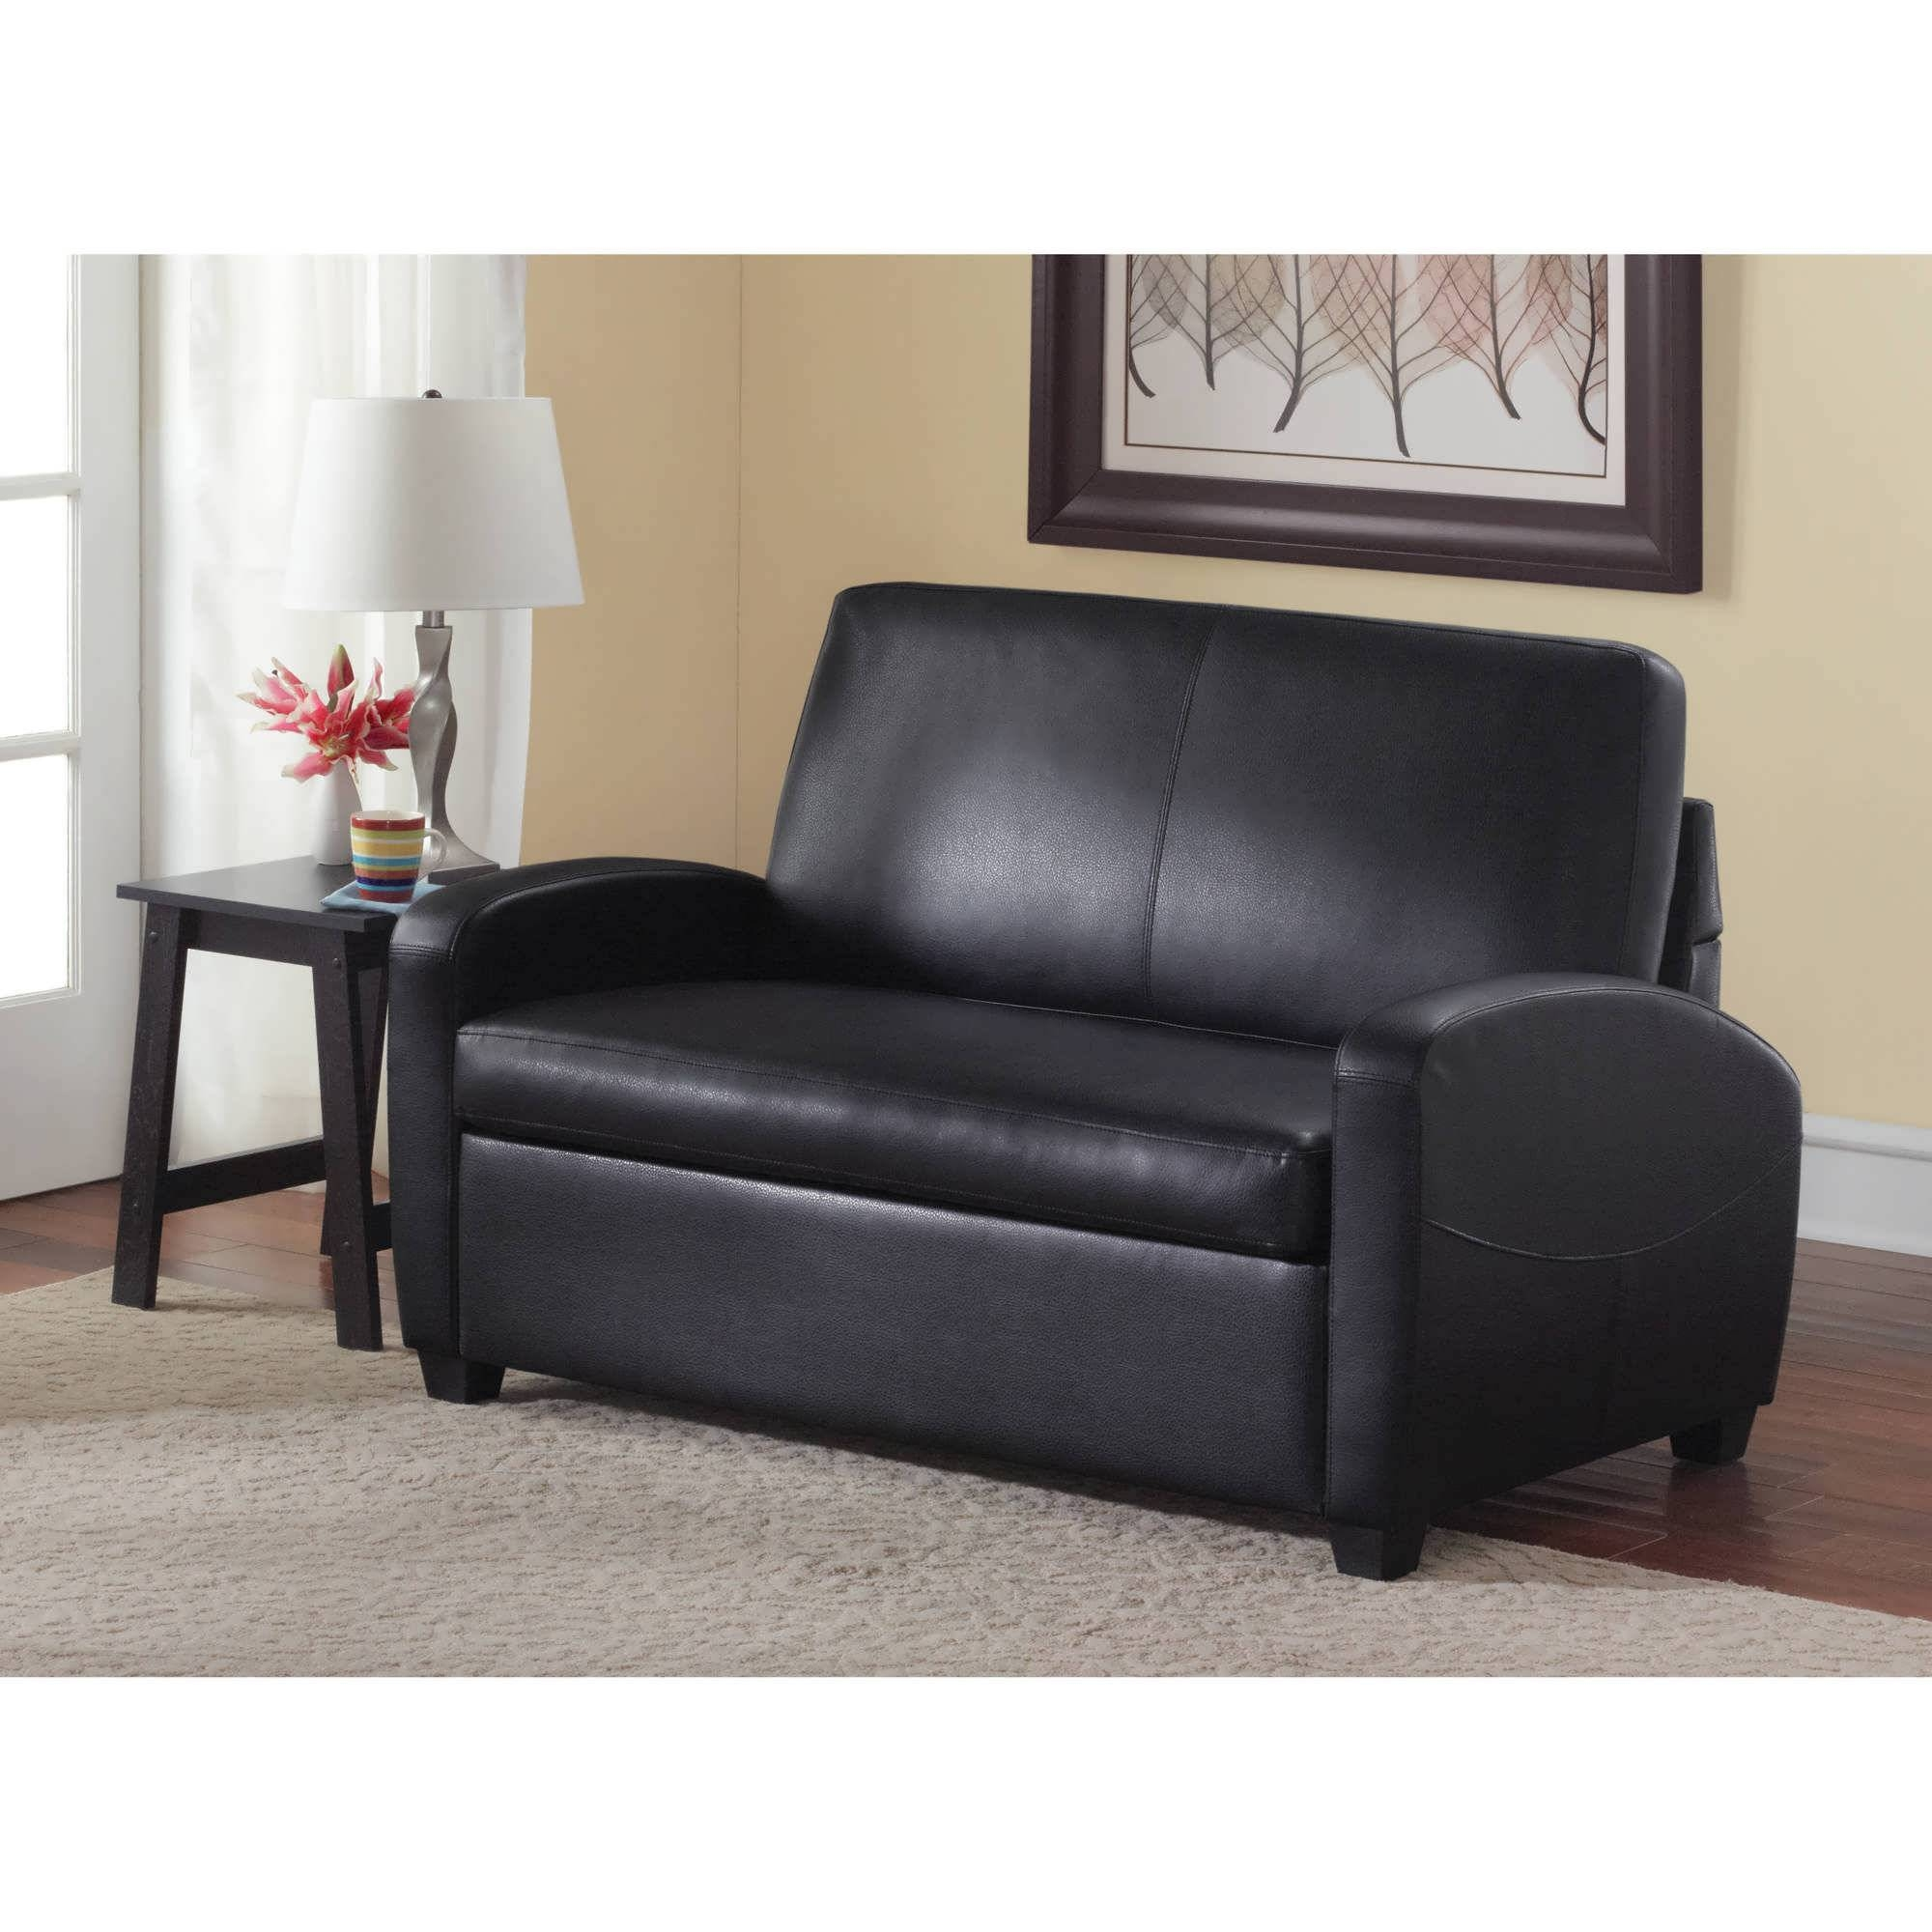 Sofa : Contemporary Sofa Sectional Couch Fabric Sofas Leather intended for Black Sofa Slipcovers (Image 10 of 15)